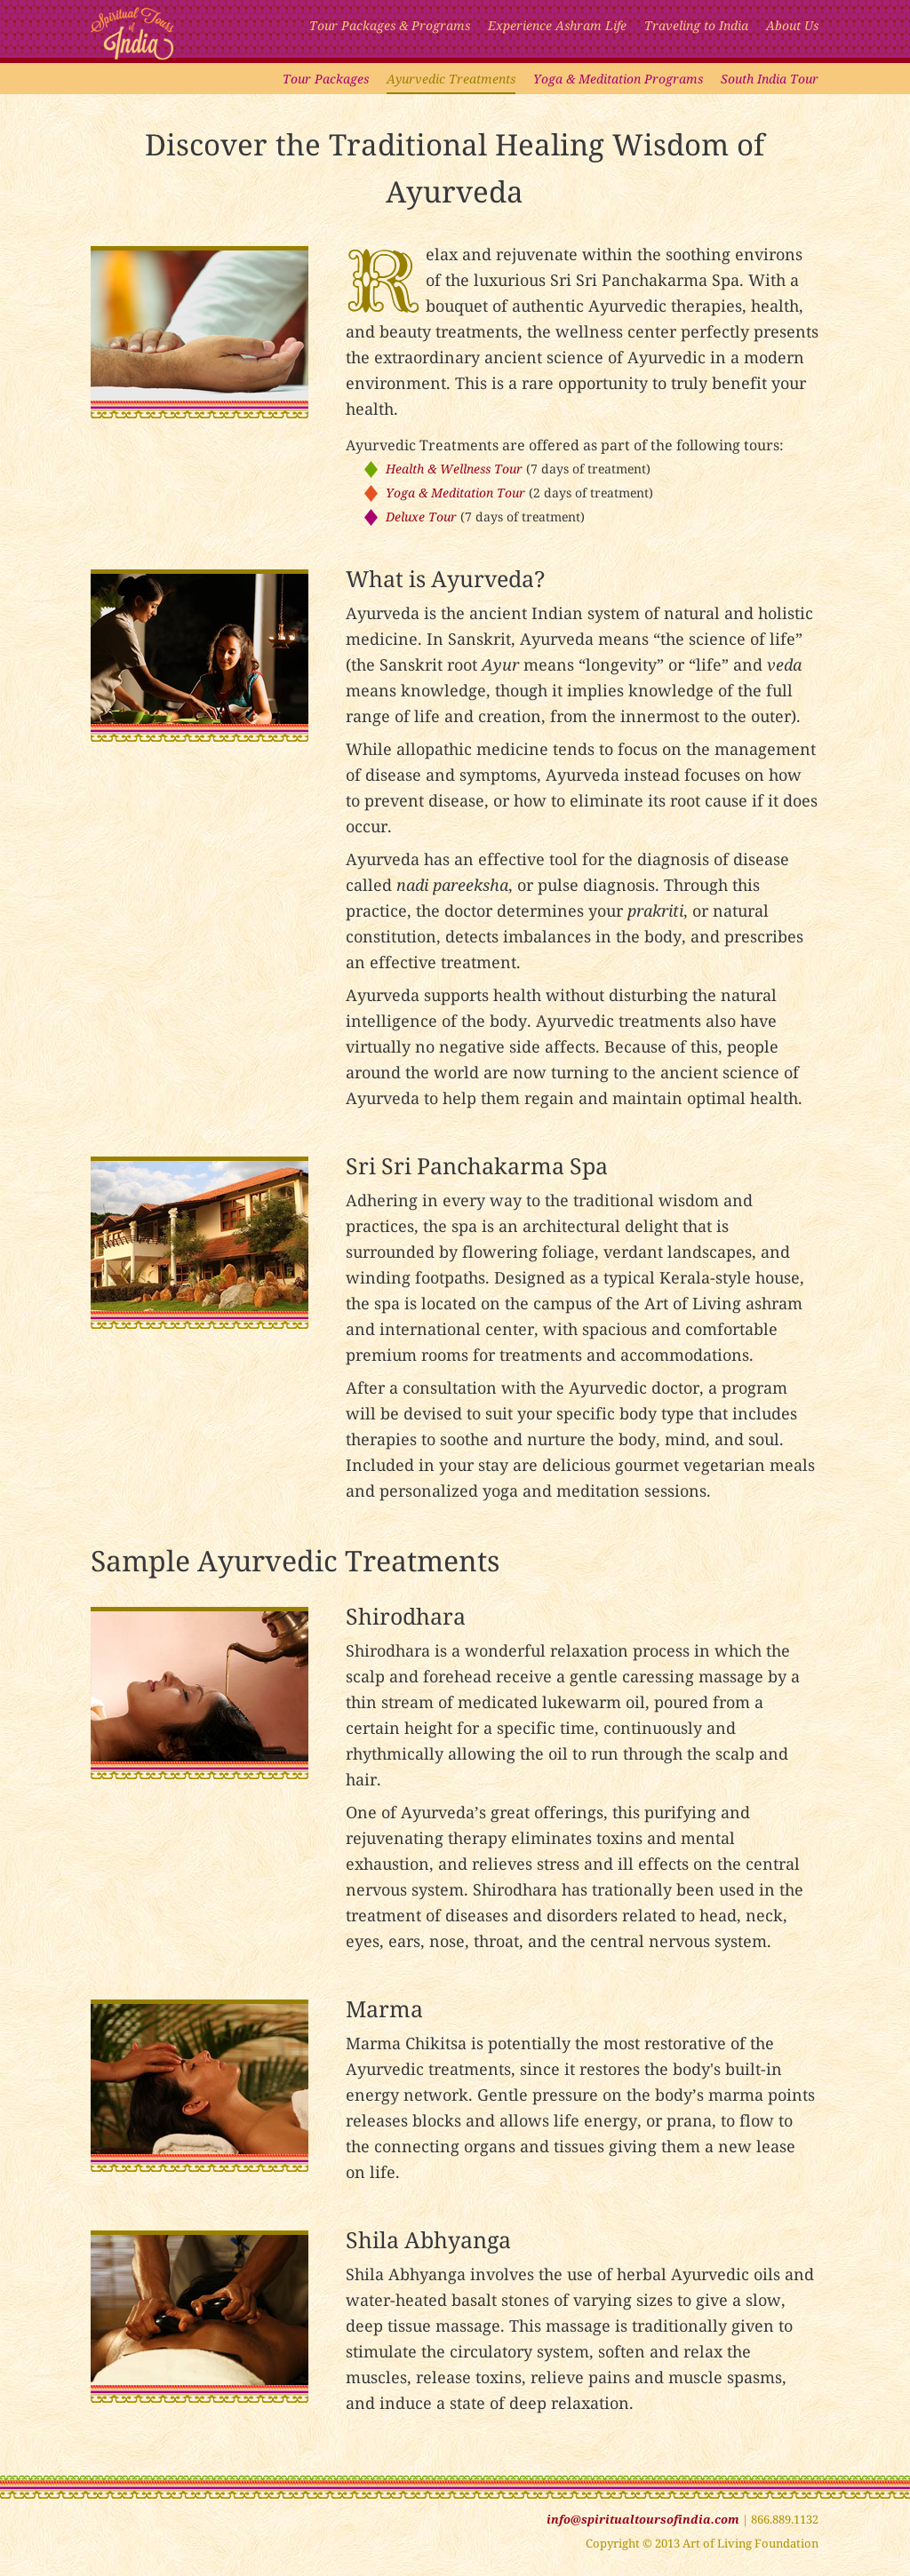 Ayurvedic Treatments Page